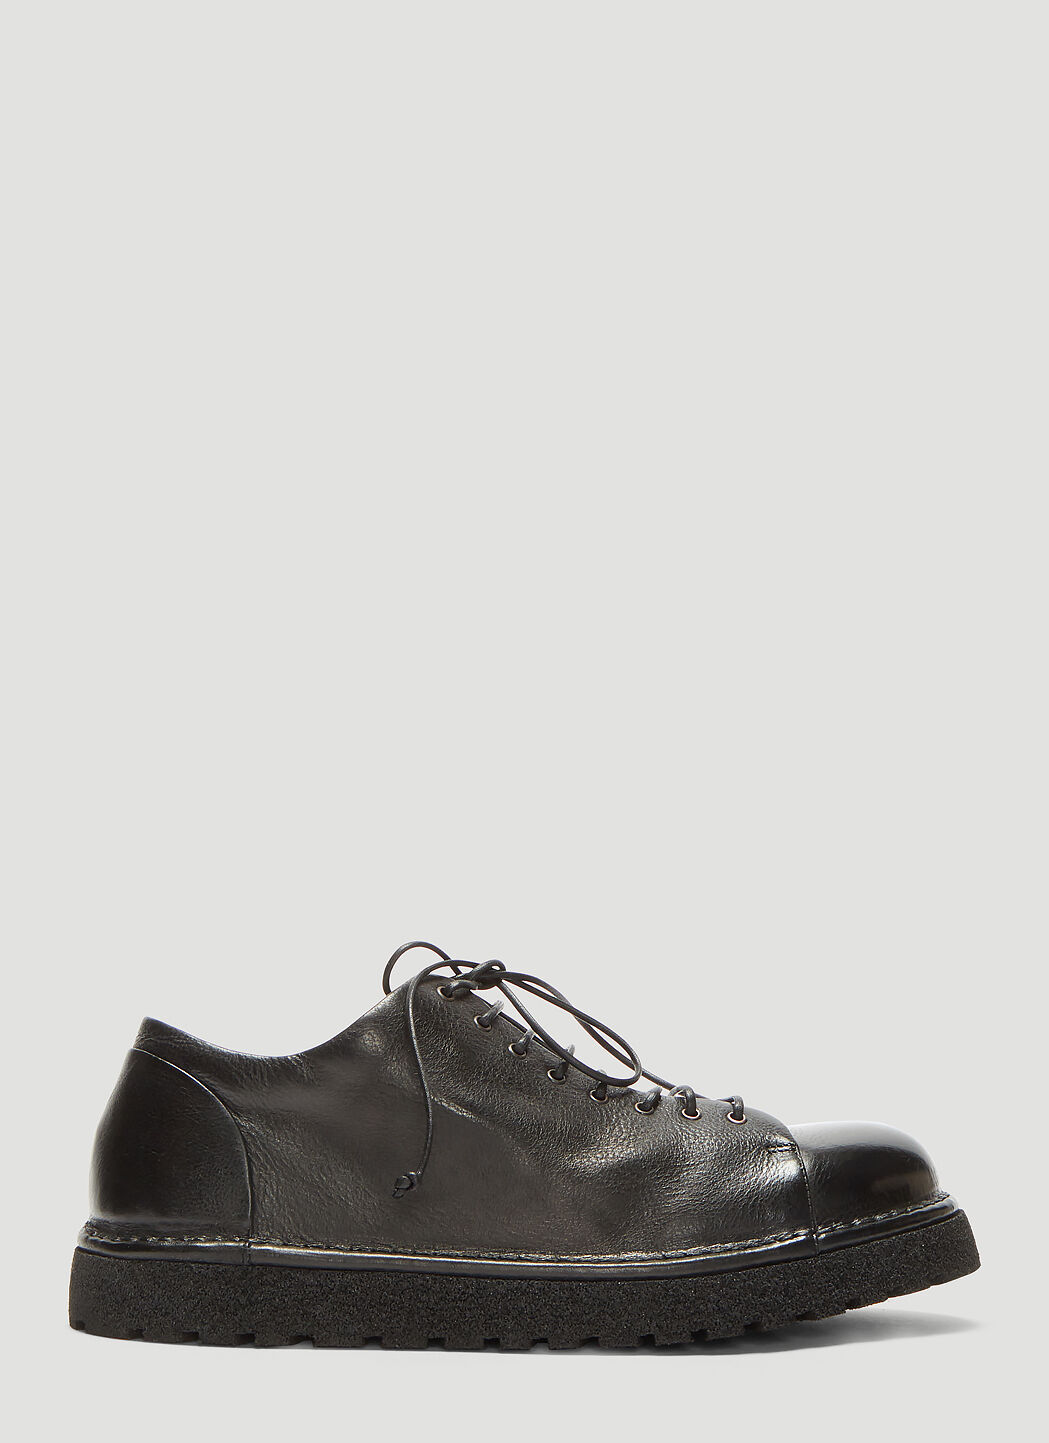 Marsèll Shoes Pallottola Derby Shoes in Black